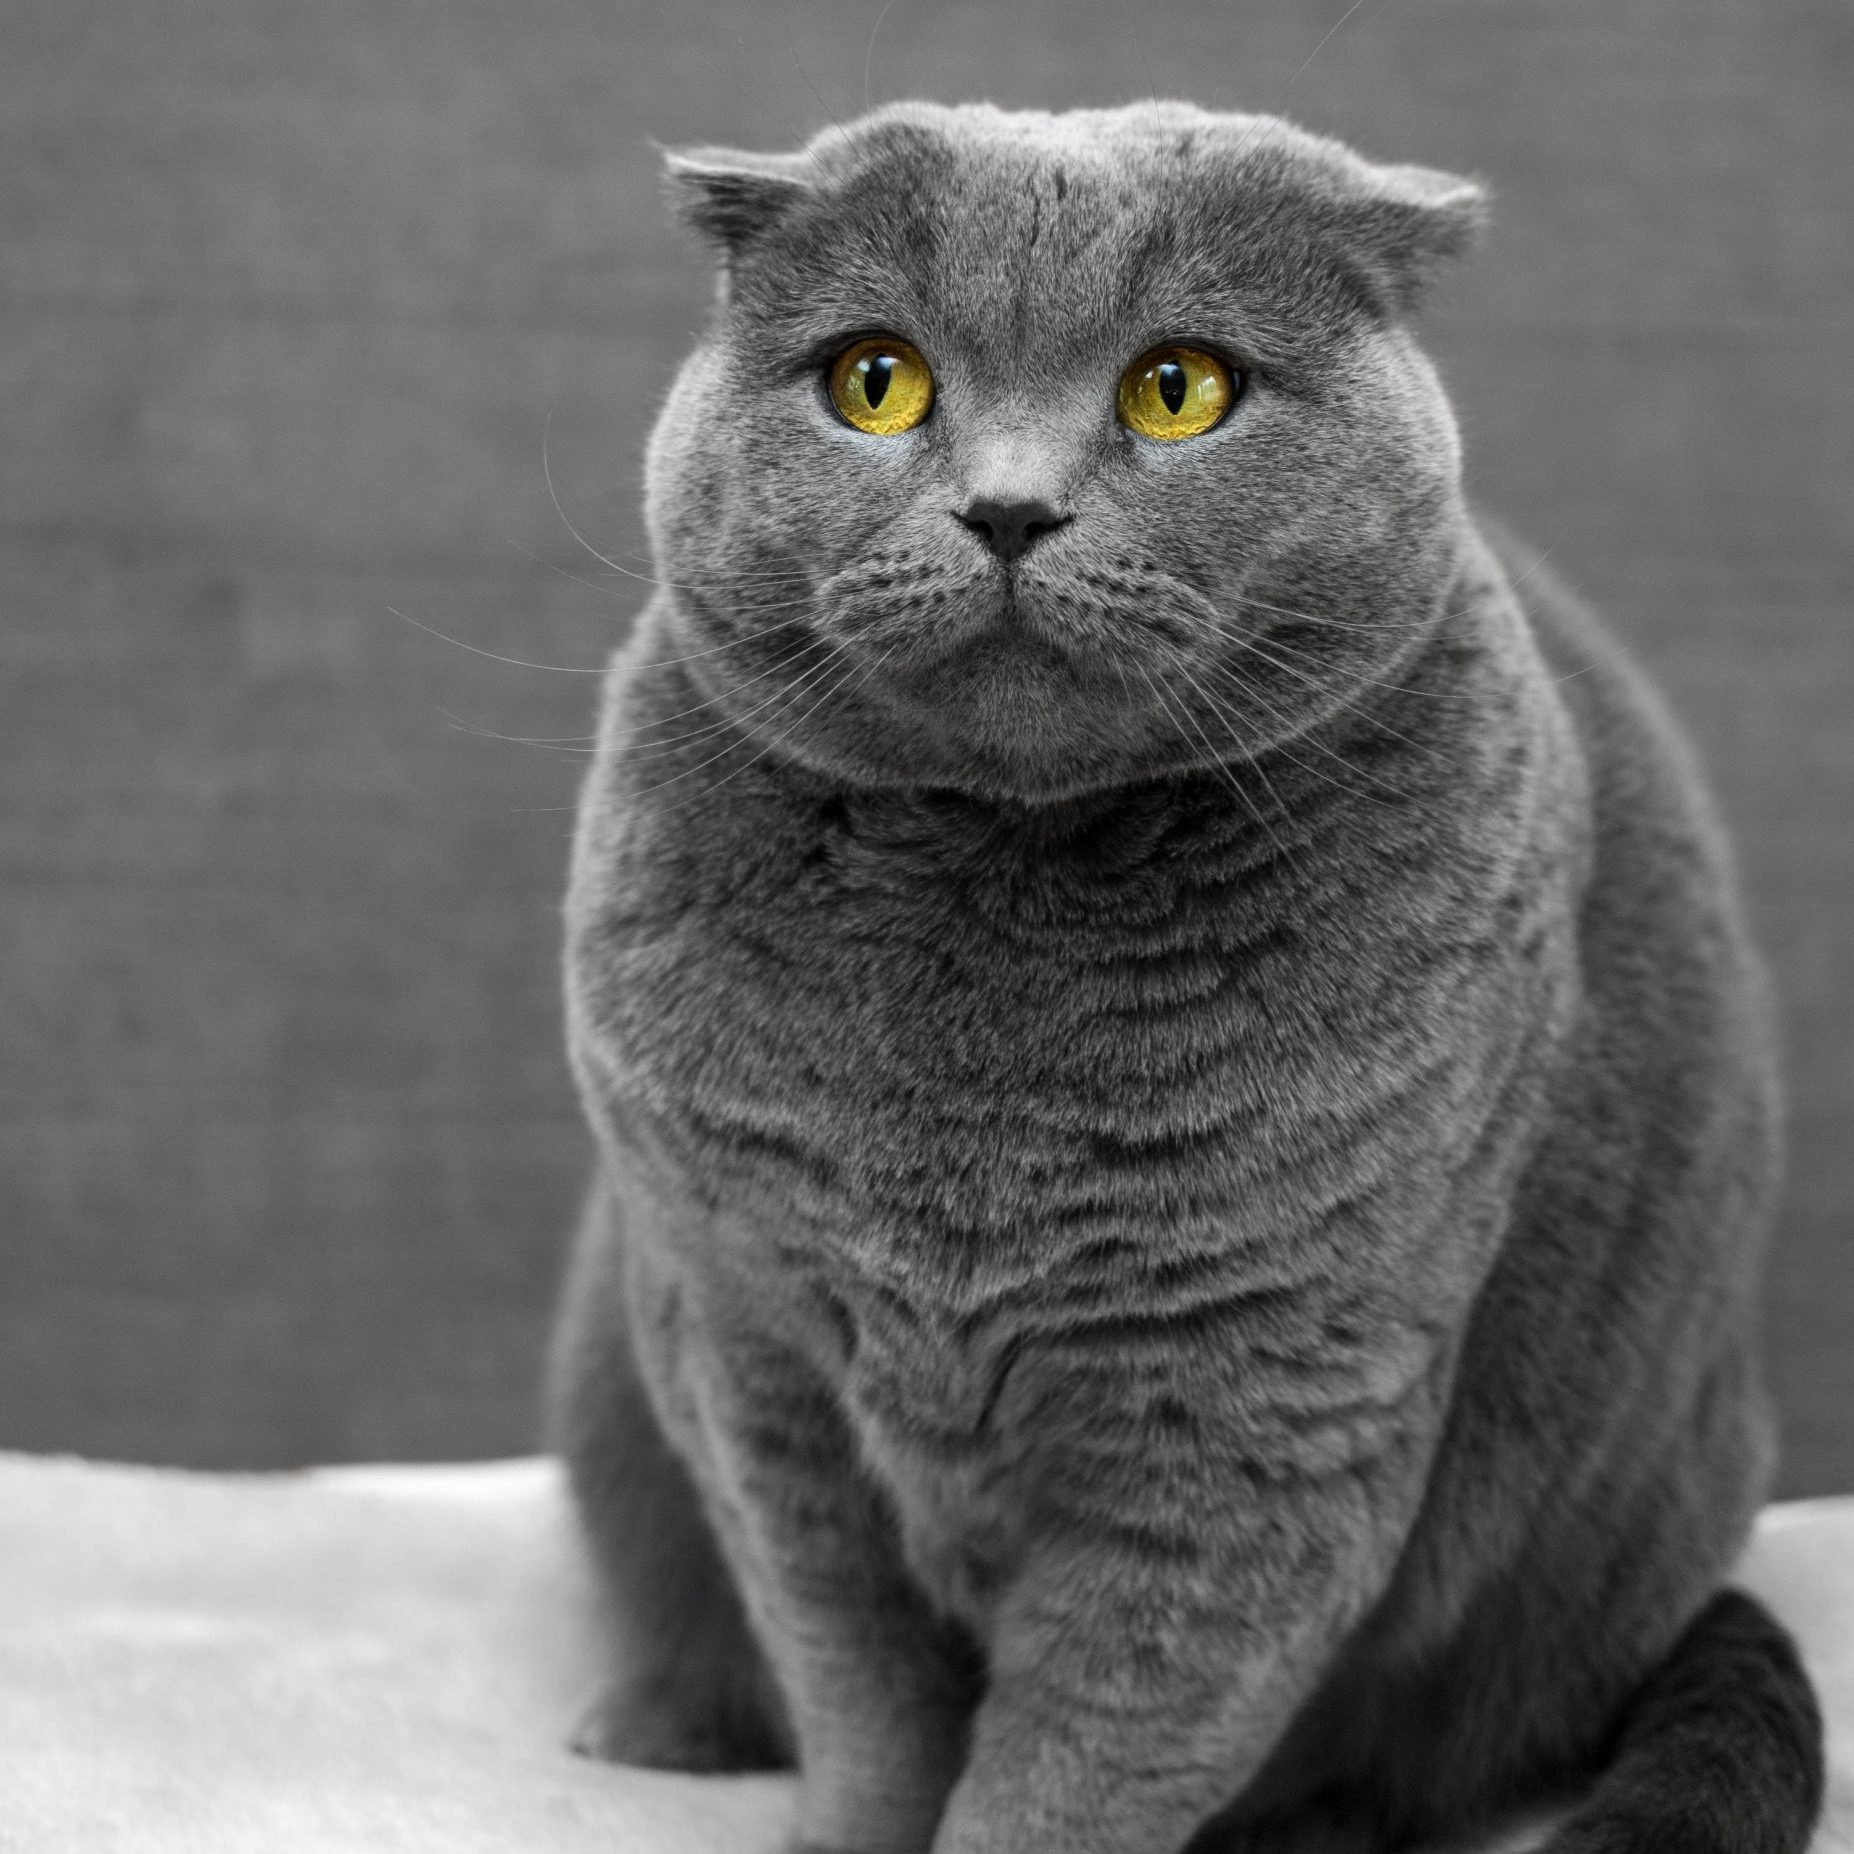 How to Help an Overweight Cat Lose Weight With Play - Image by Max Baskakov - via Unsplash